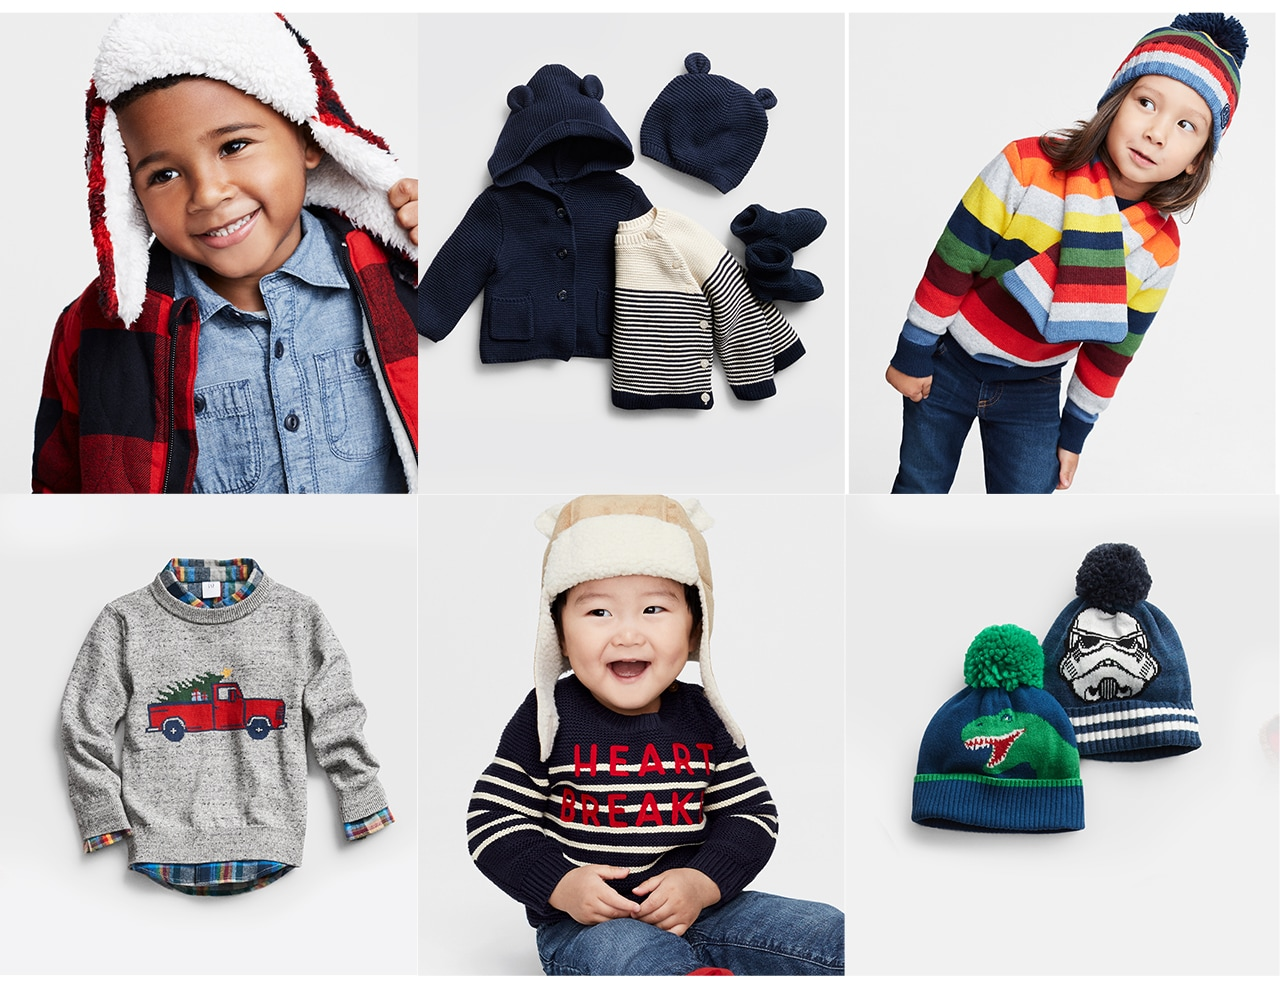 toddler & baby boy - toddler & baby boy in colorful outer wear clothing